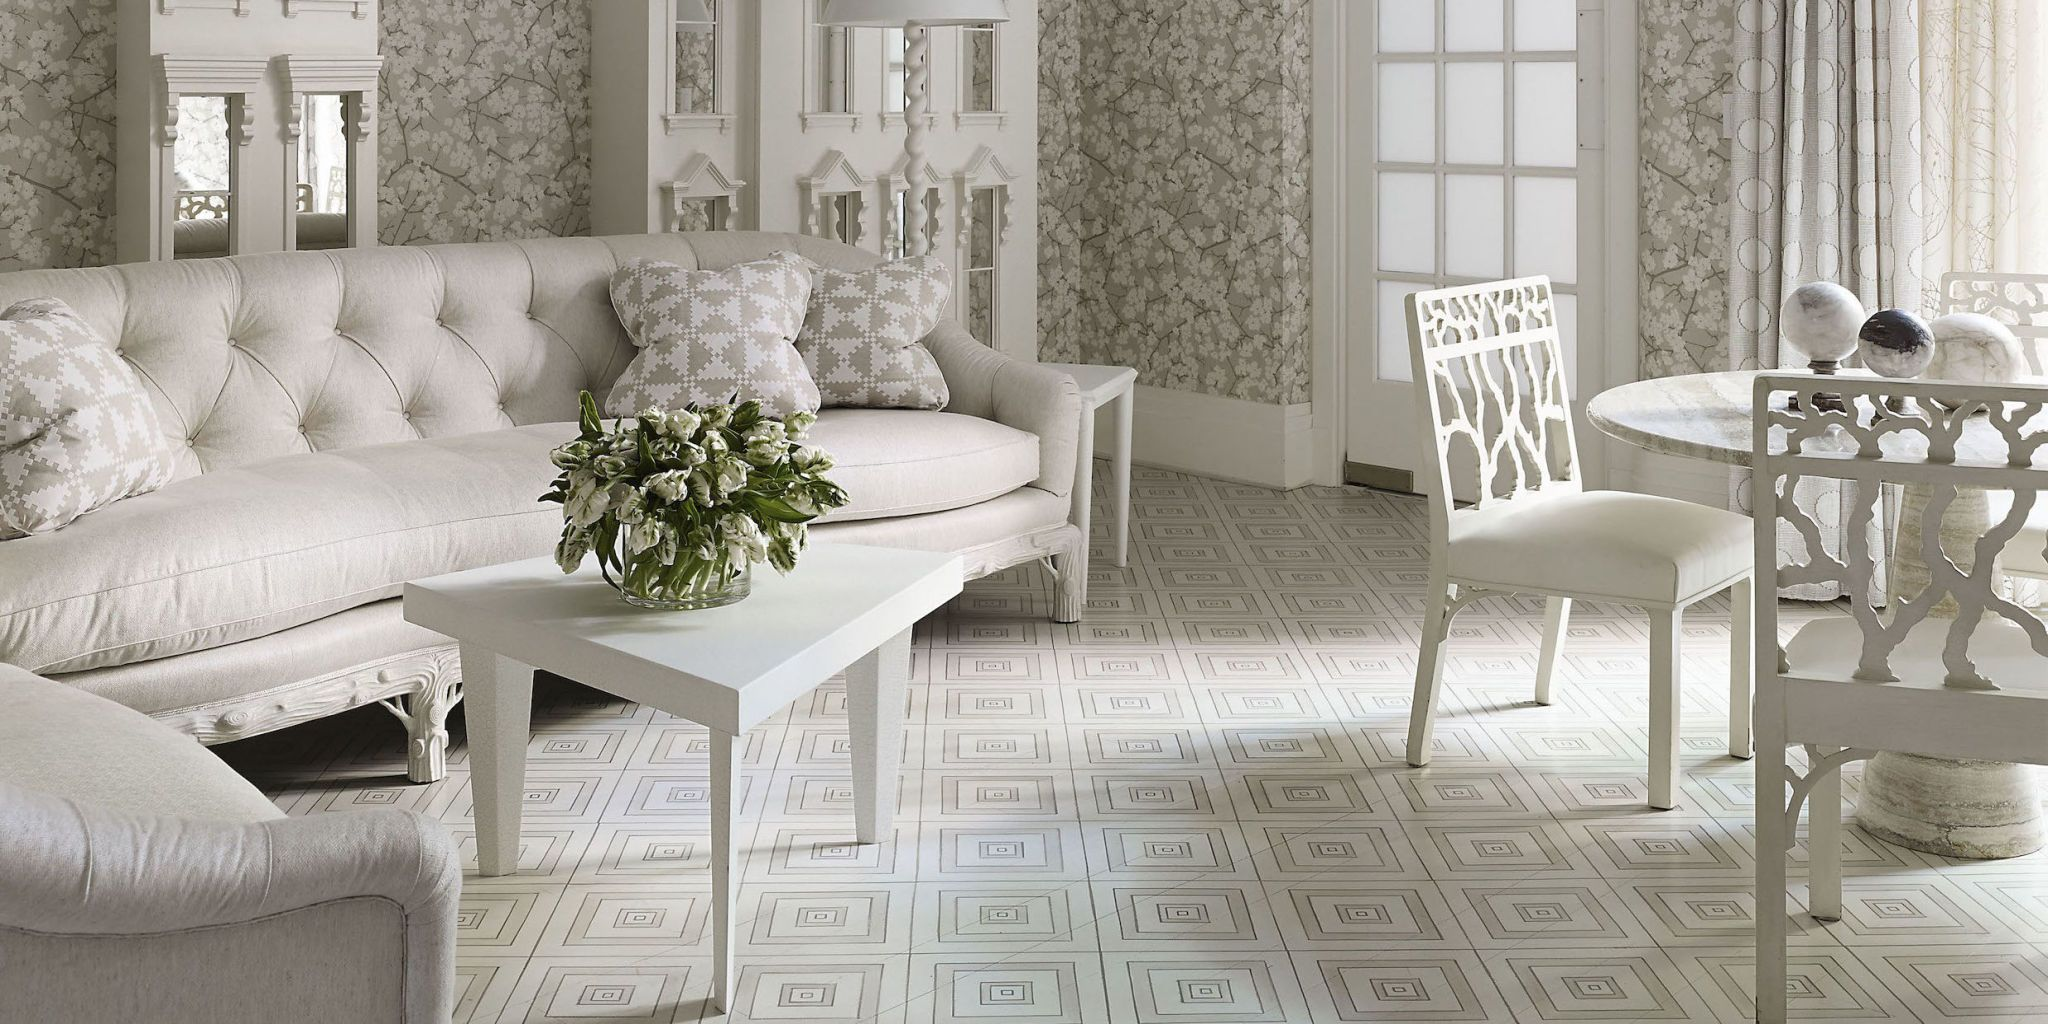 white living room furniture & 20 White Living Room Furniture Ideas - White Chairs and Couches